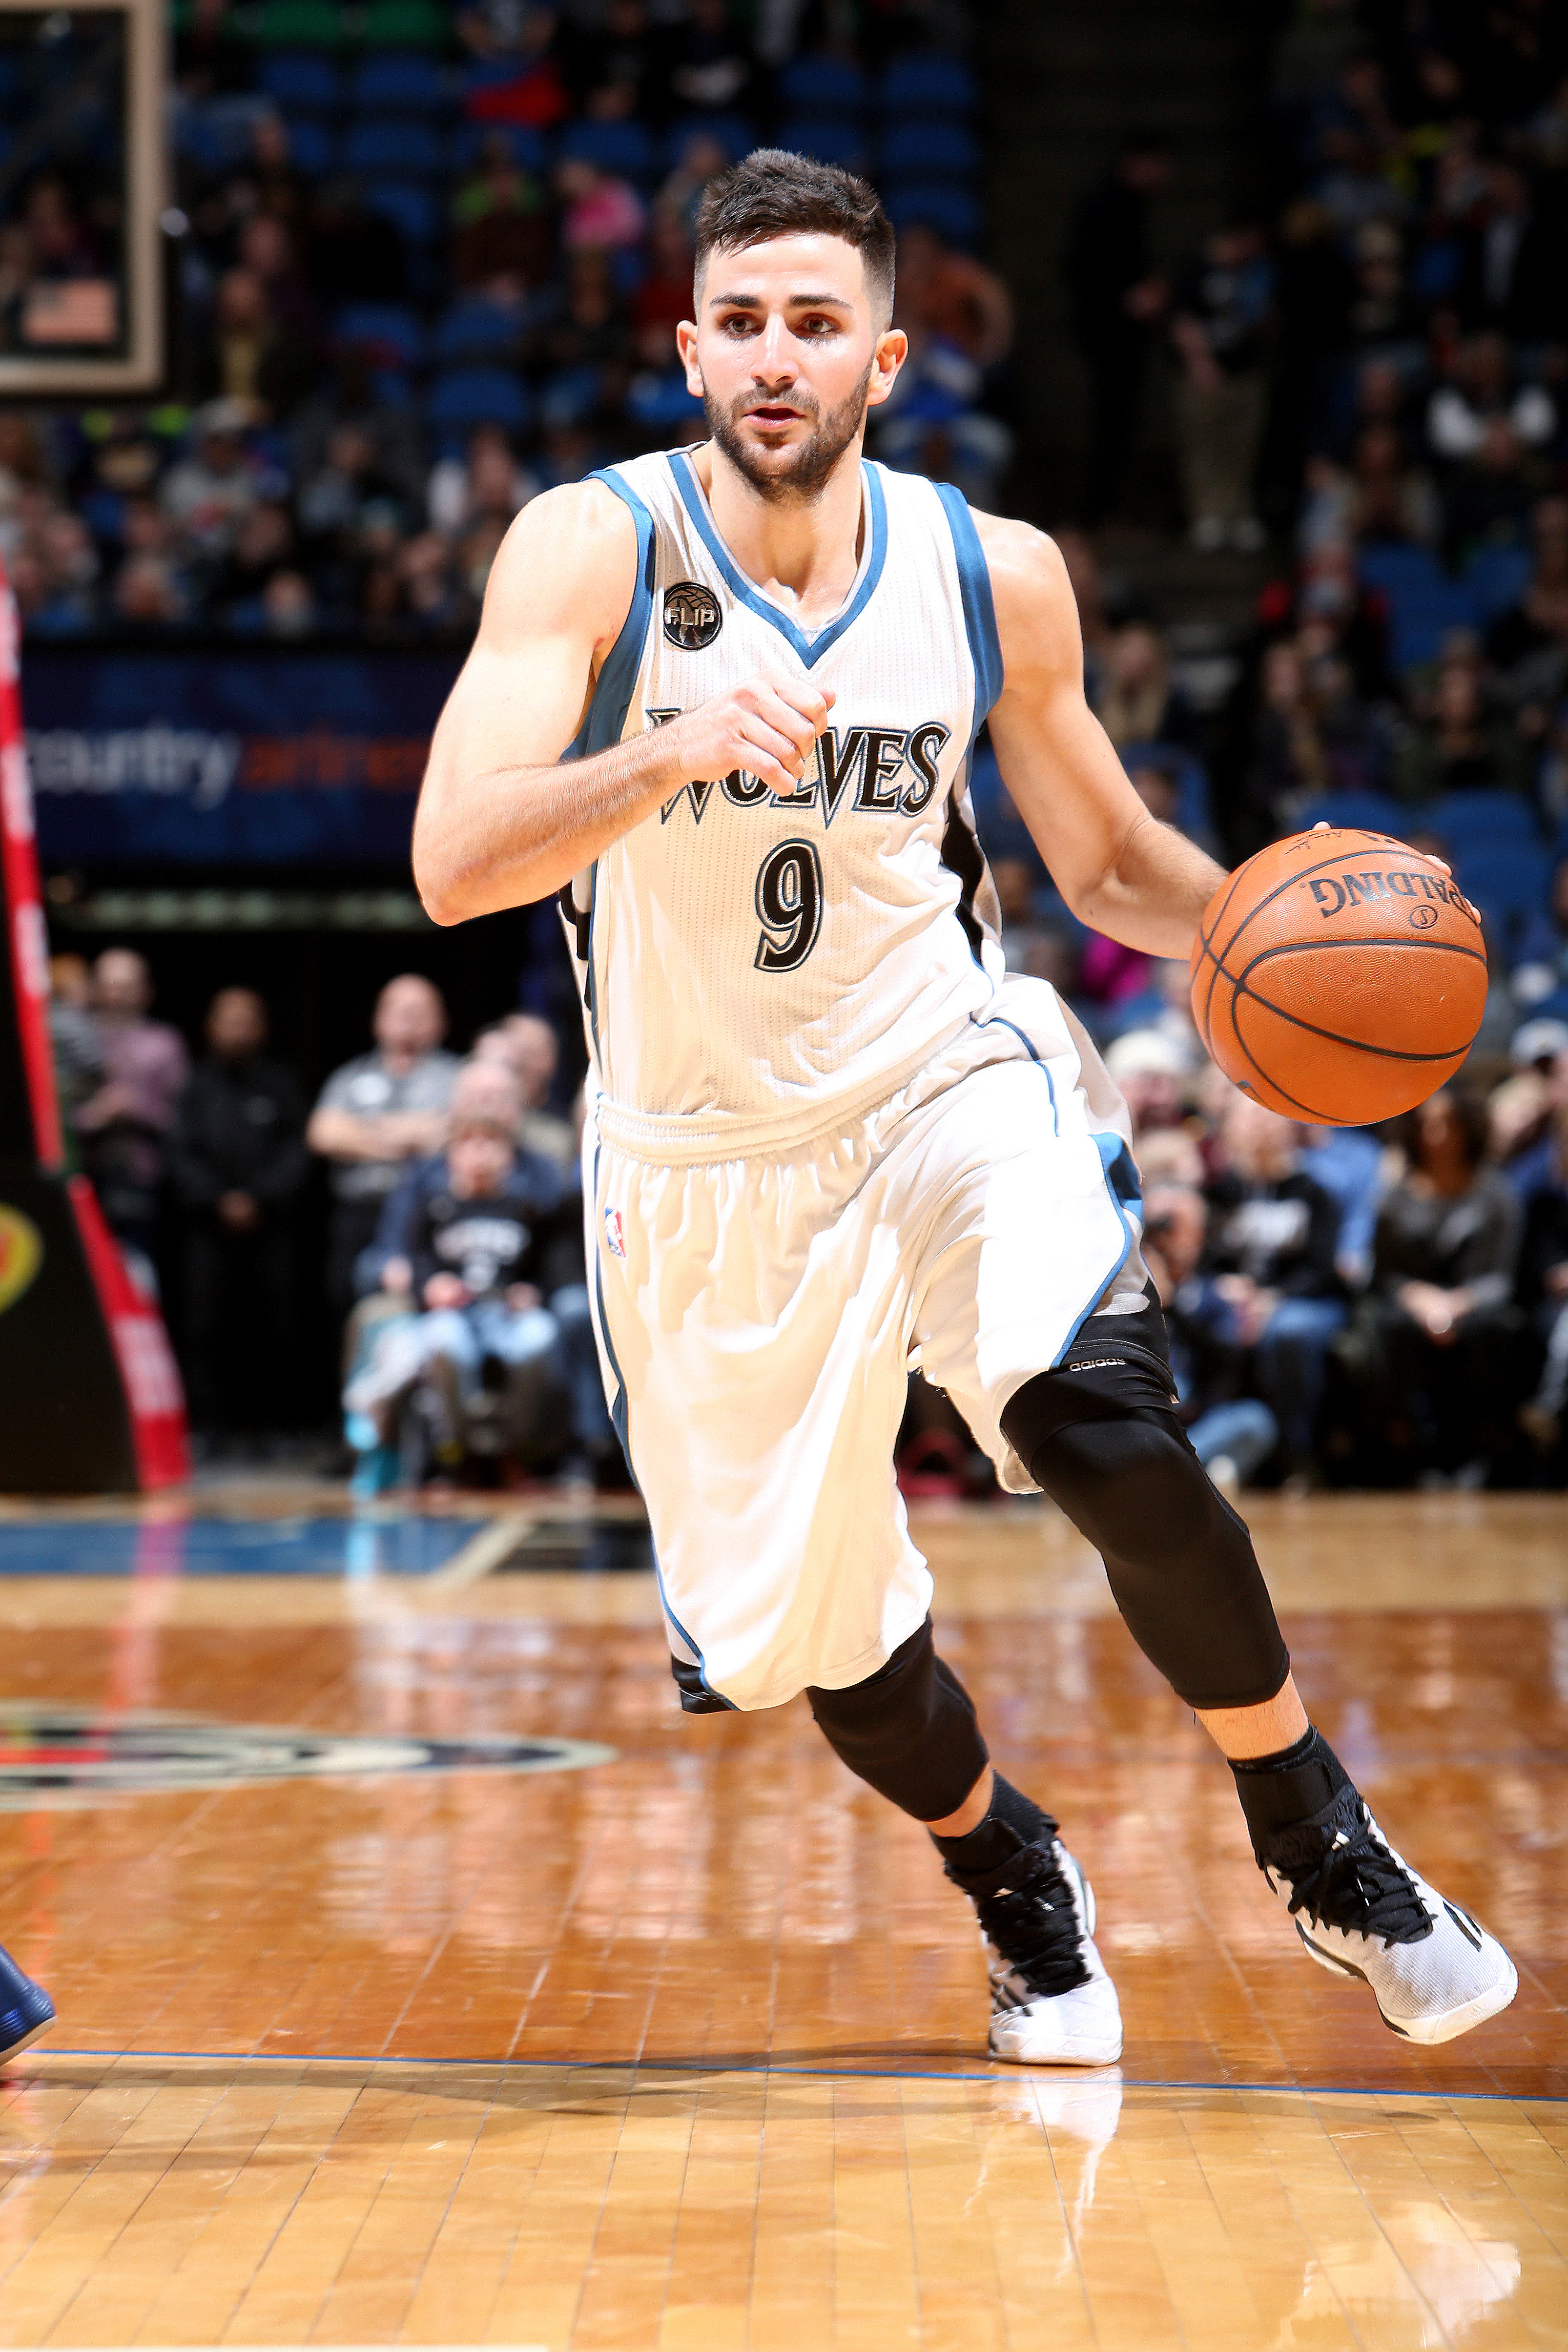 MINNEAPOLIS, MN - JANUARY 17: Ricky Rubio #9 of the Minnesota Timberwolves handles the ball during the game against the Phoenix Suns on January 17, 2016 at Target Center in Minneapolis, Minnesota. (Photo by David Sherman/NBAE via Getty Images)